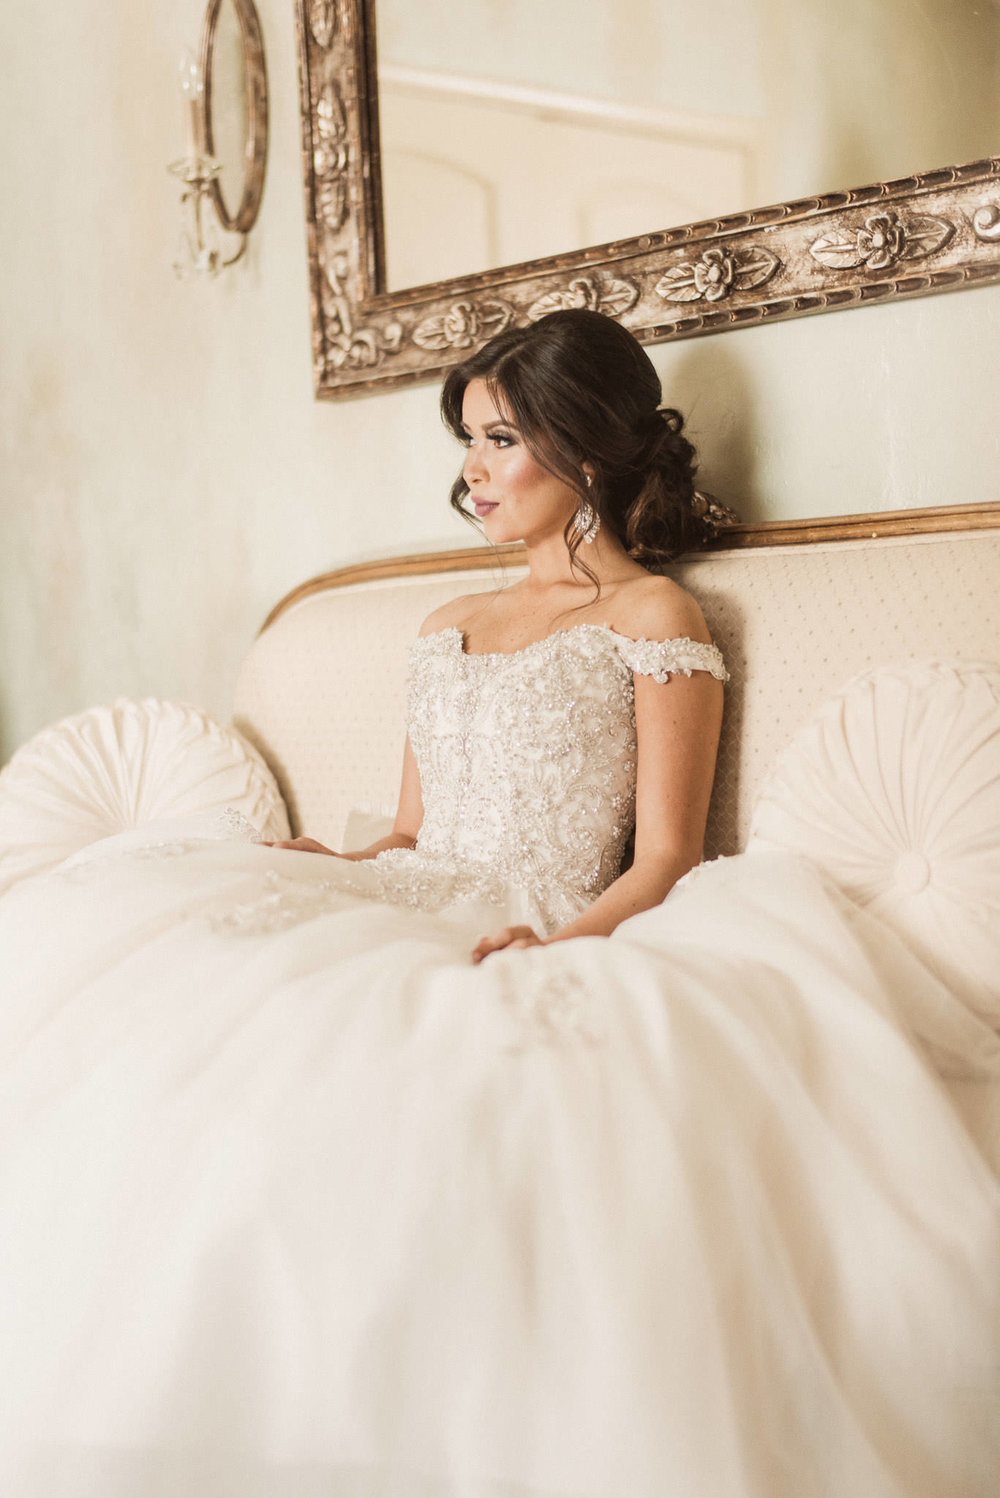 adriana-christian-wedding-re-sm-35.jpg